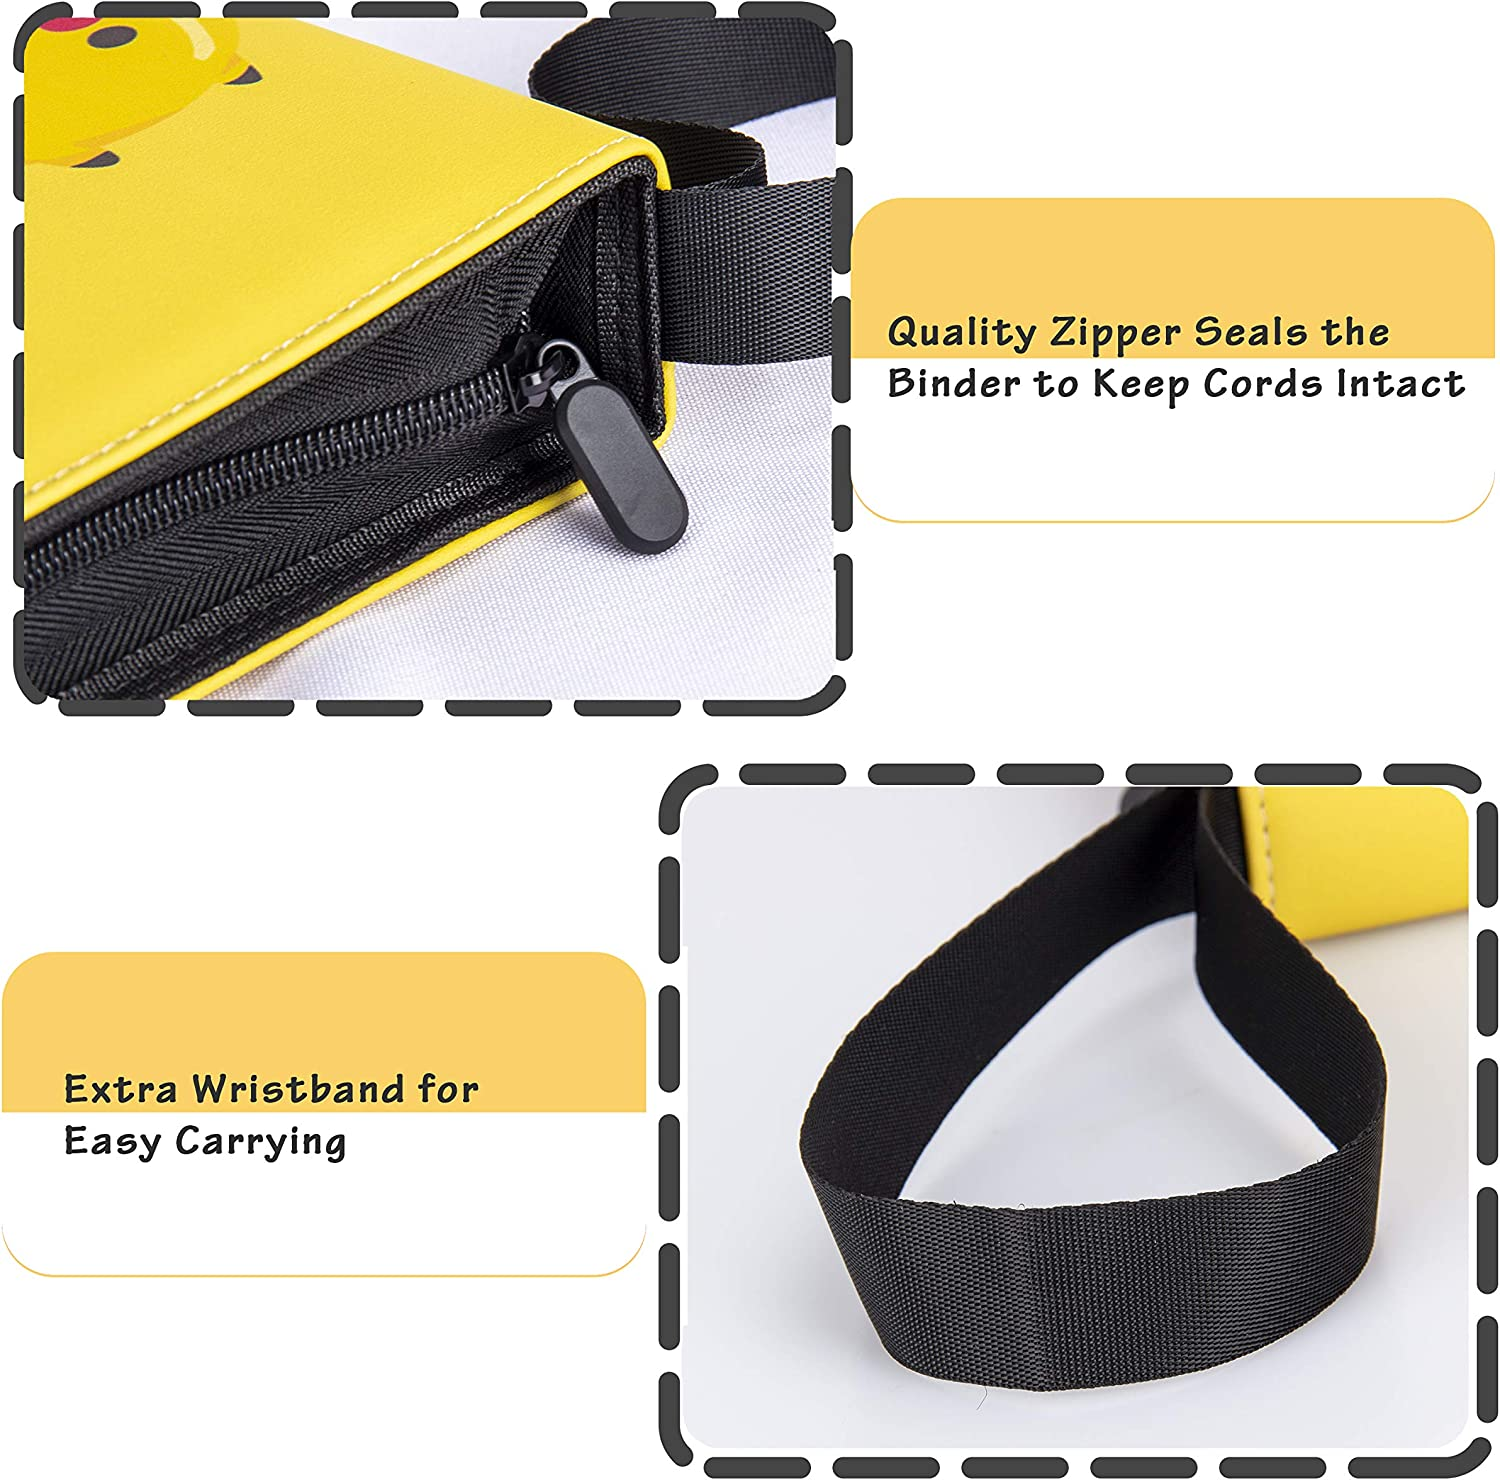 Yellow Geecow 4-Pocket Binder Compatible with Pokemon Cards Portable Storage Case with Removable Sheets Holds Up to 400 Cards-Toys Gifts for 3-8 Year Old Boys Girls